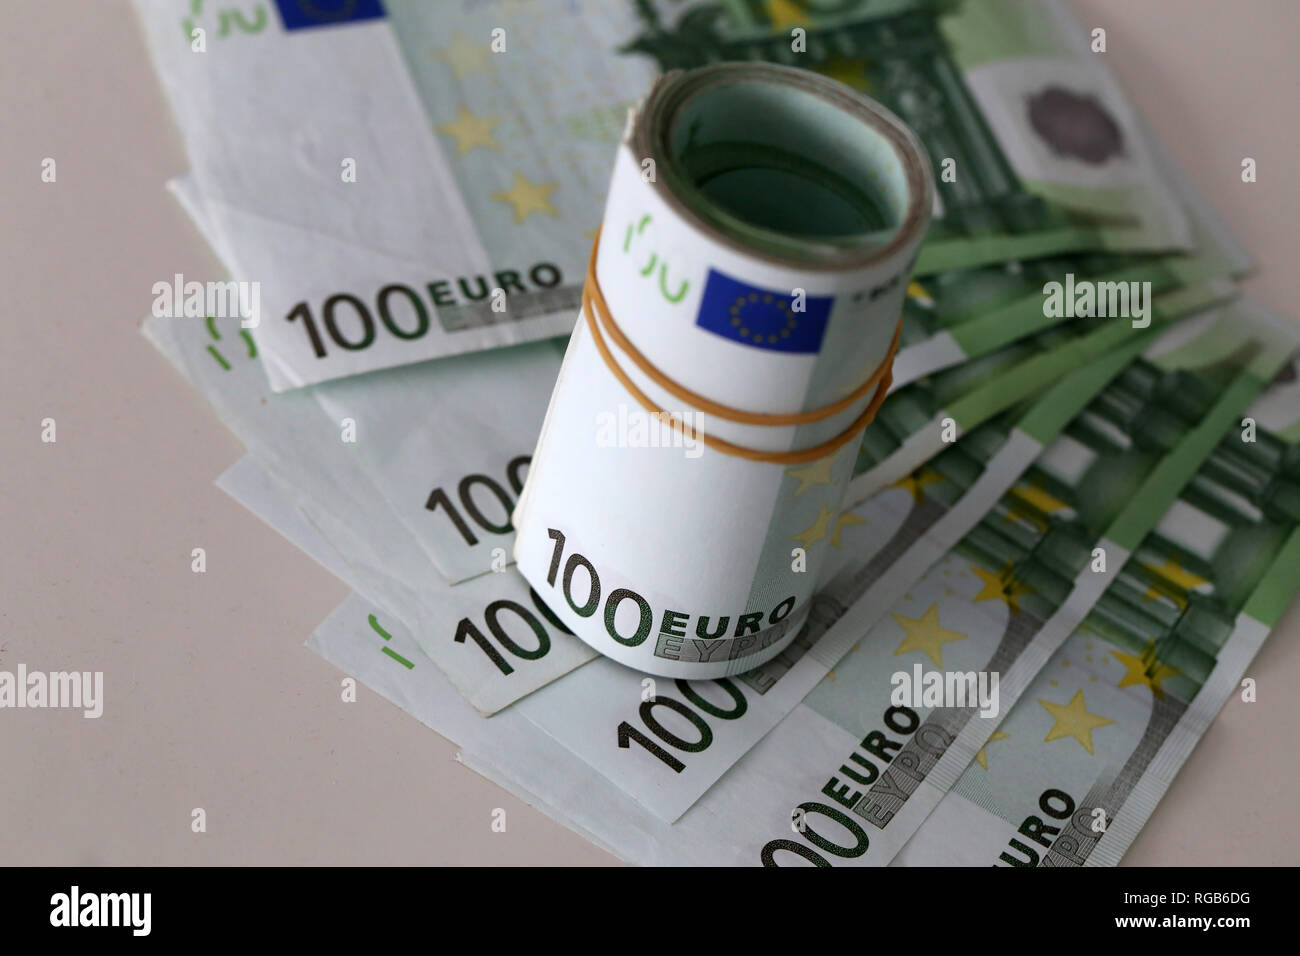 086d4a2f Banknotes worth 100 euros are on the table Stock Photo: 233815836 ...